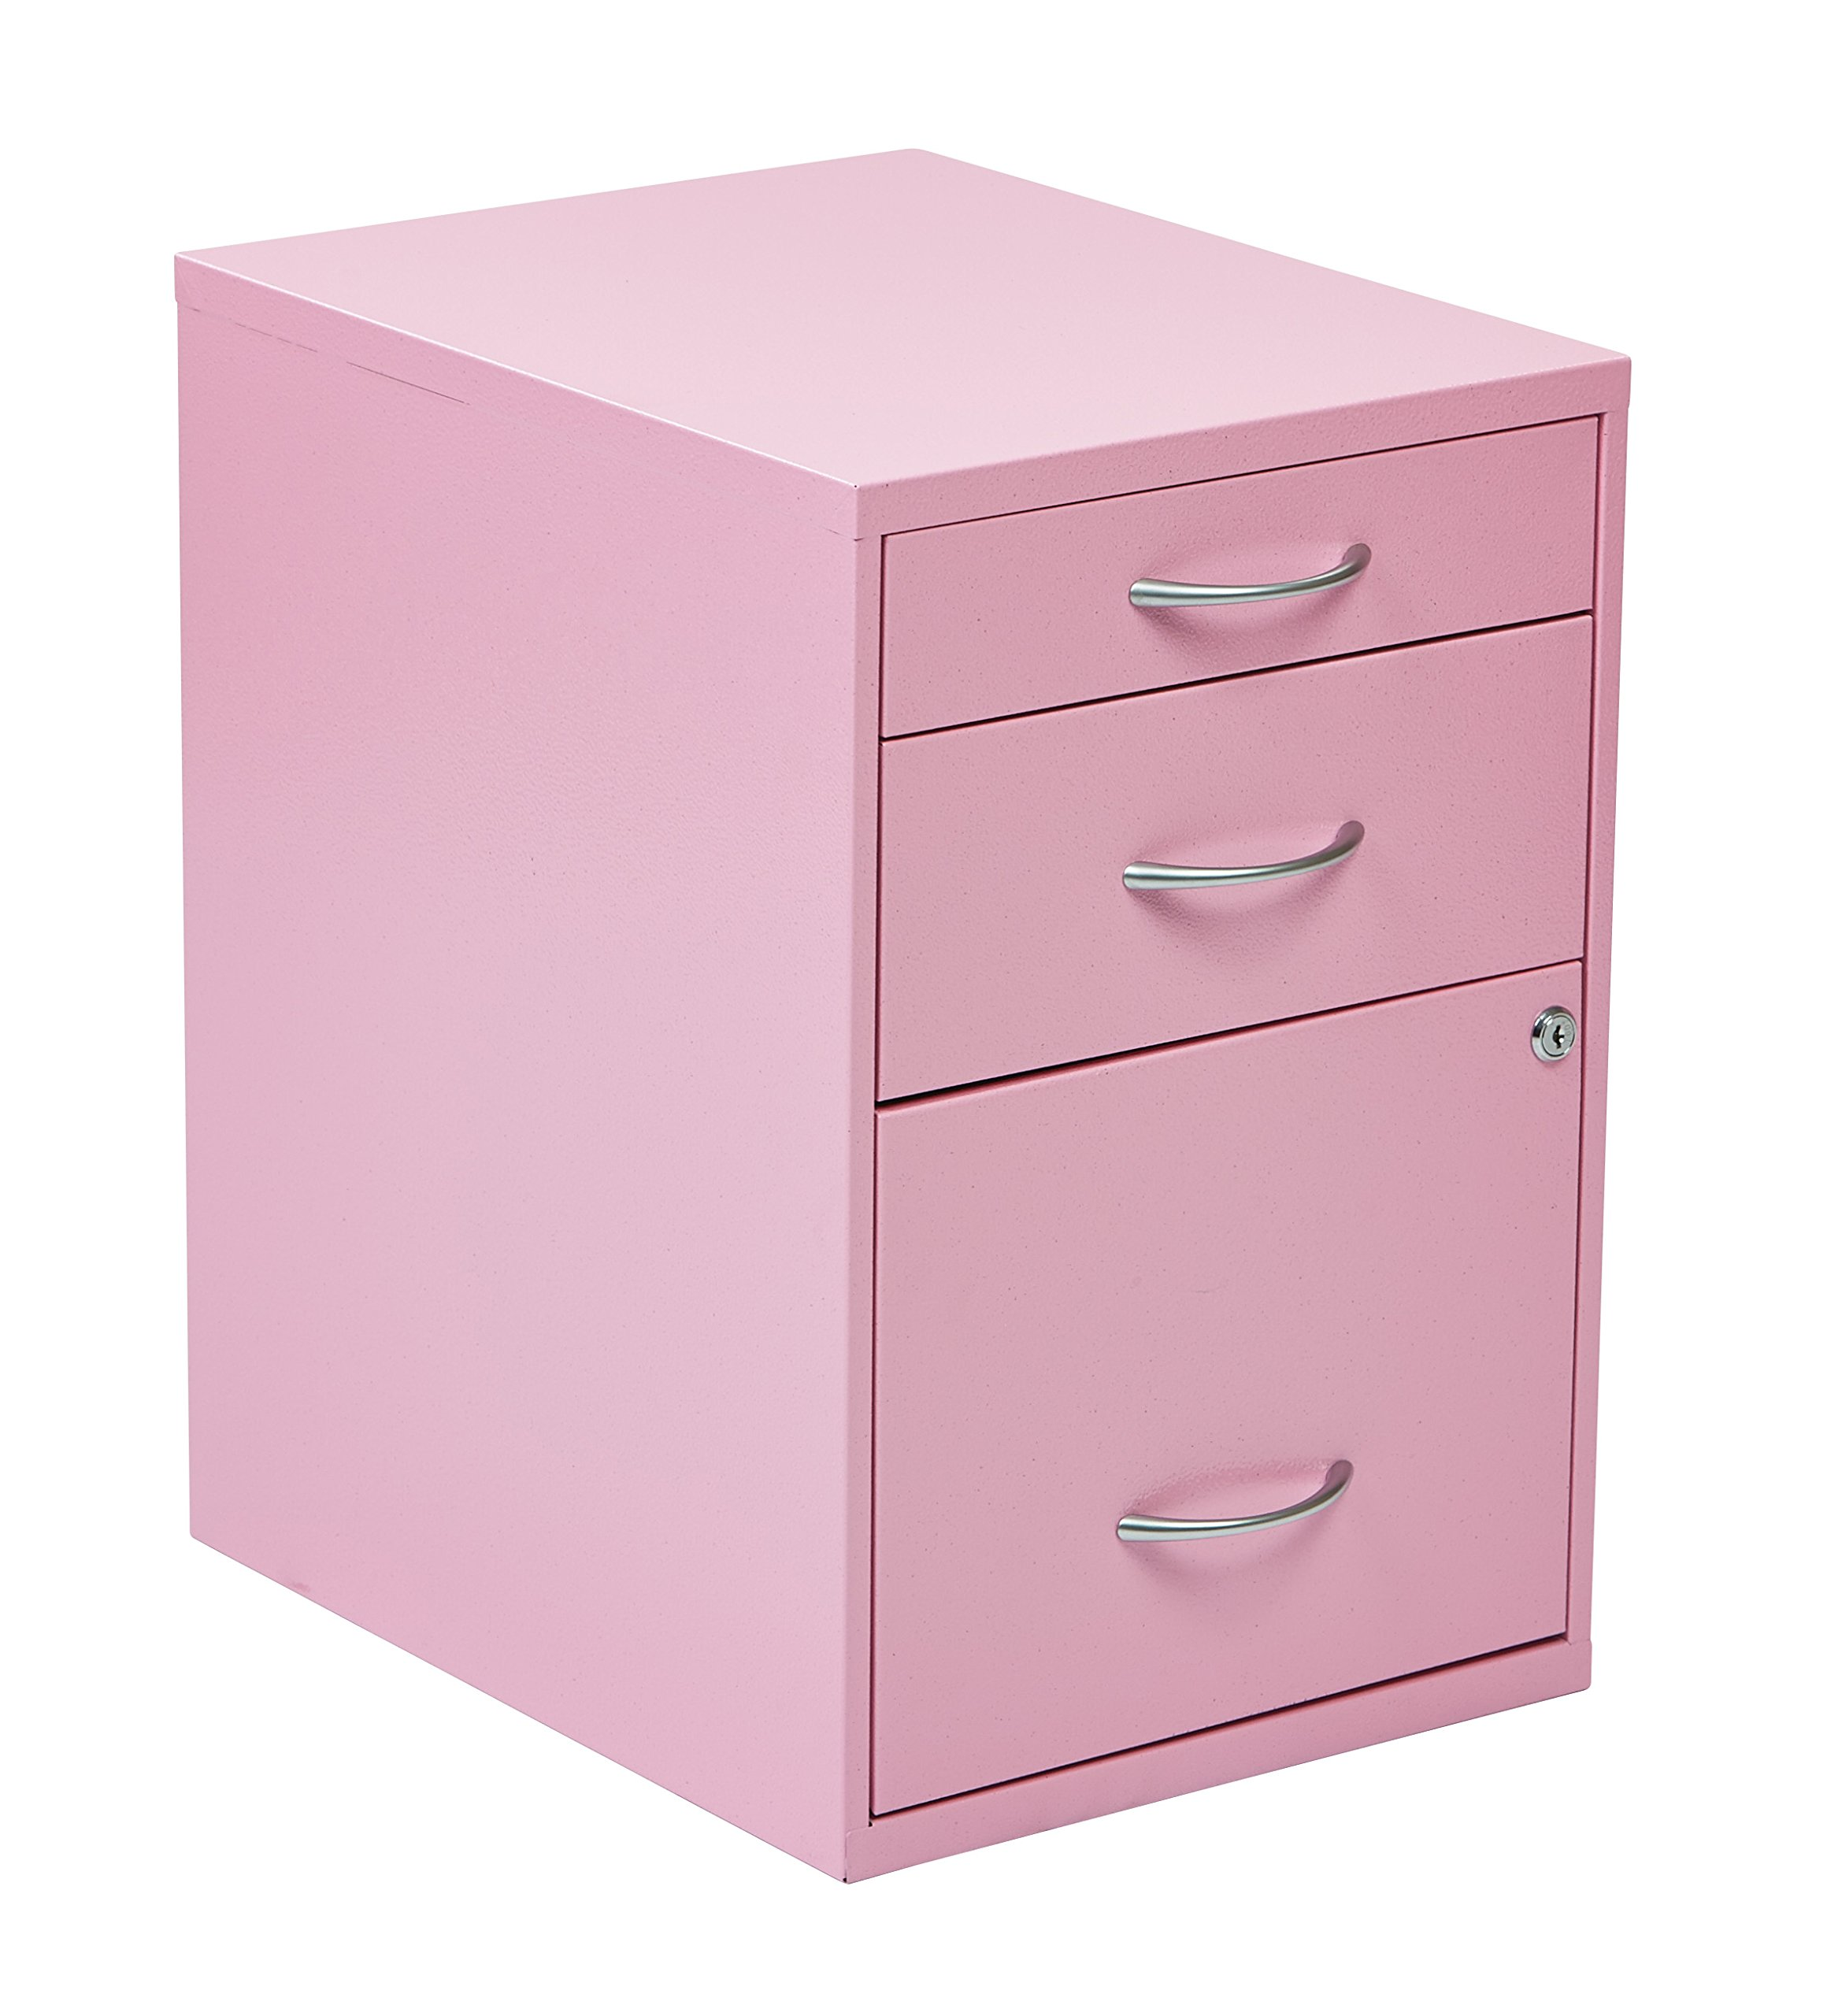 Office Star 3-Drawer Metal File Cabinet, Pink Finish by OSP Designs